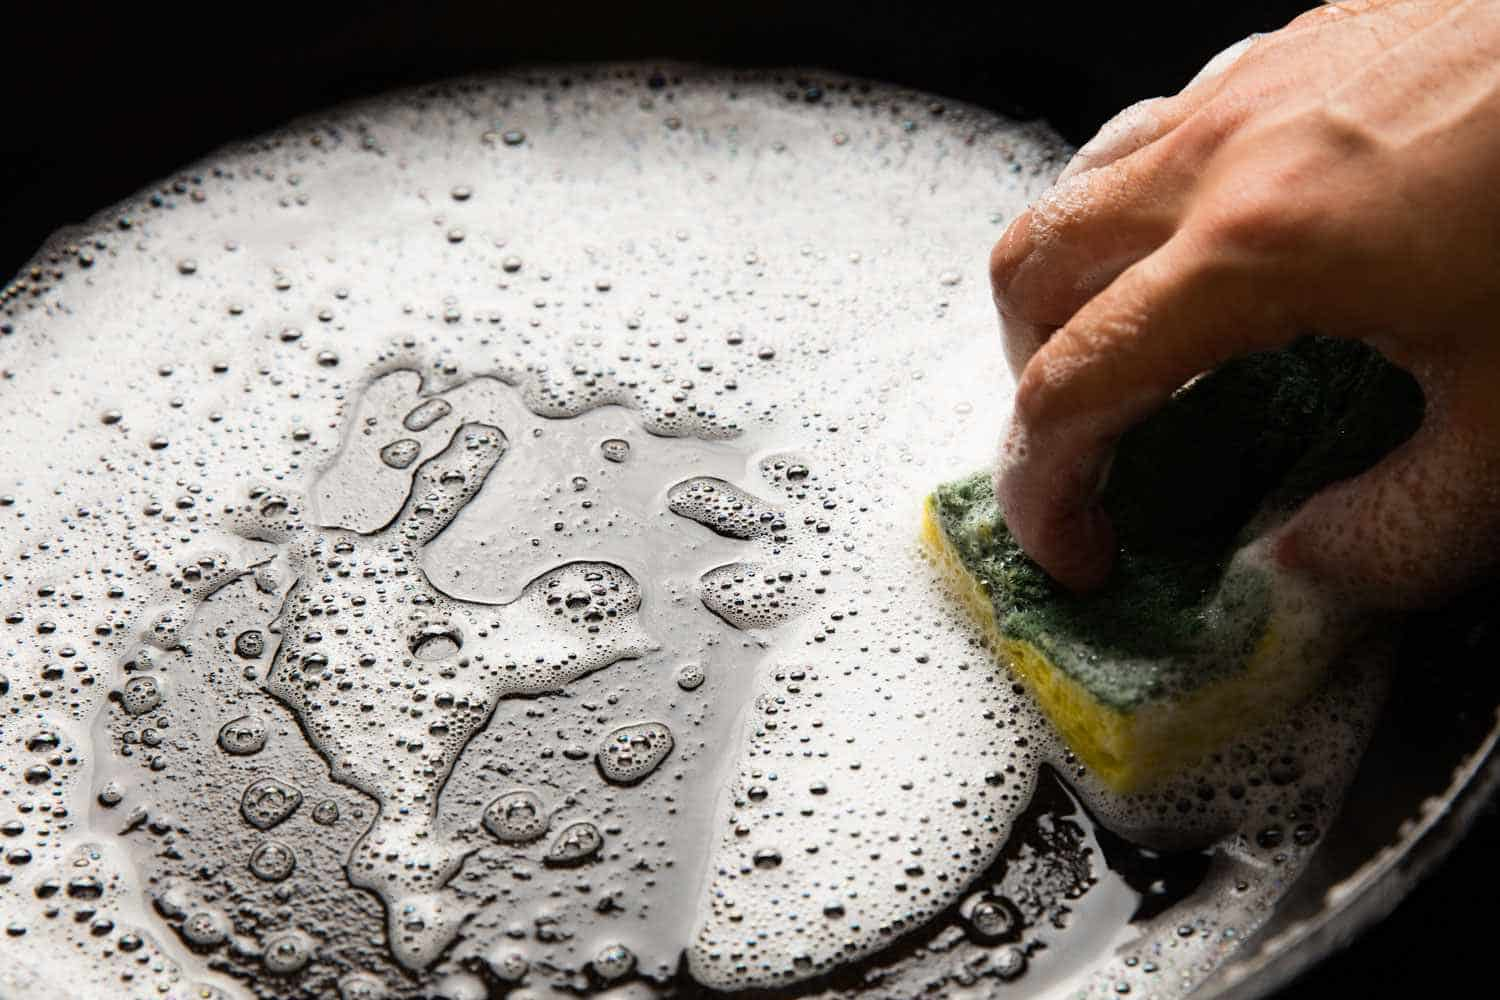 maintaining both carbon steel and cast iron pans